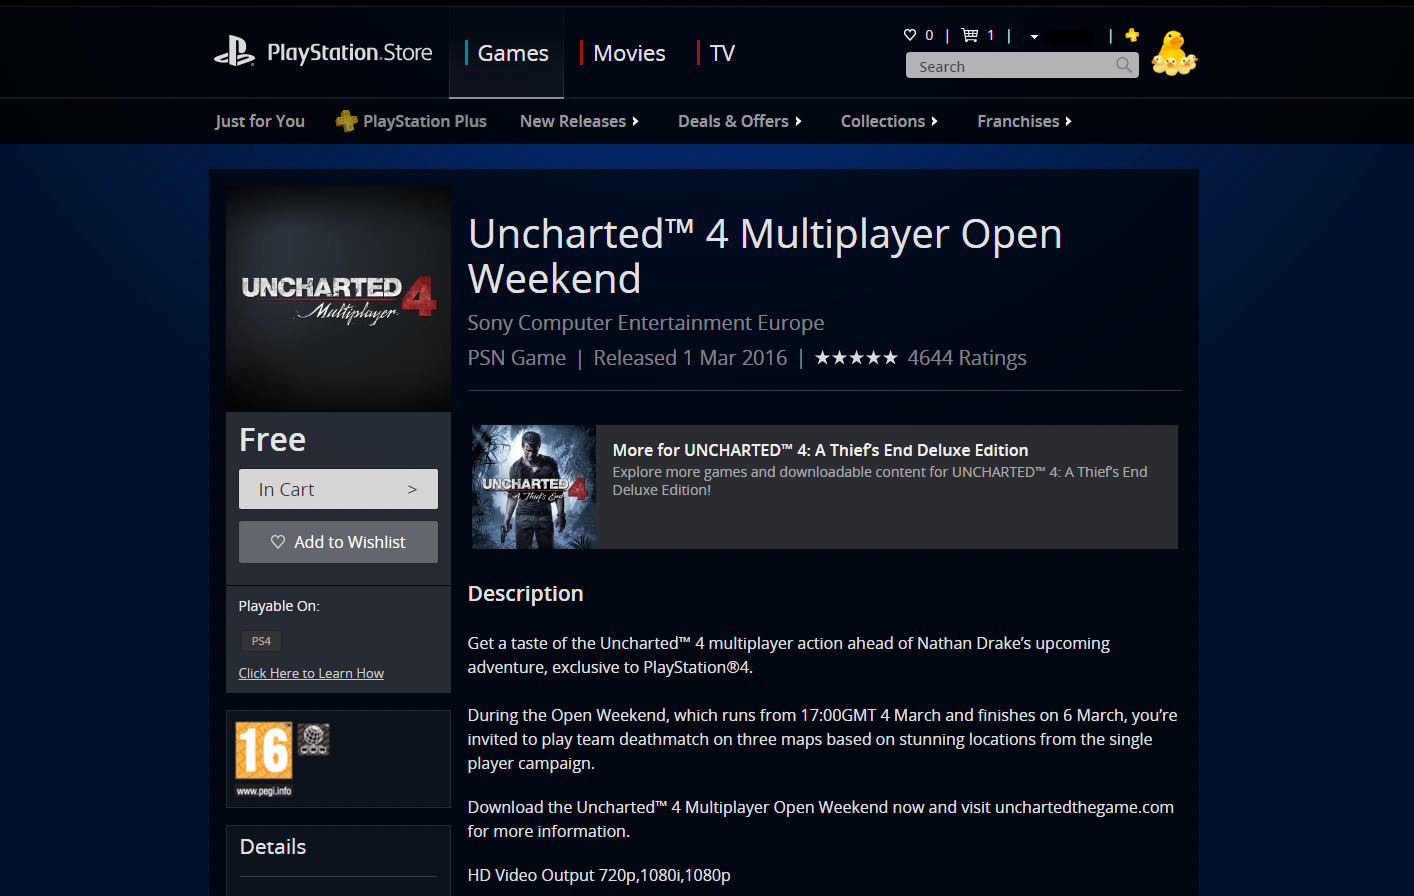 uncharted-4-gets-open-beta-this-weekend-145676274461